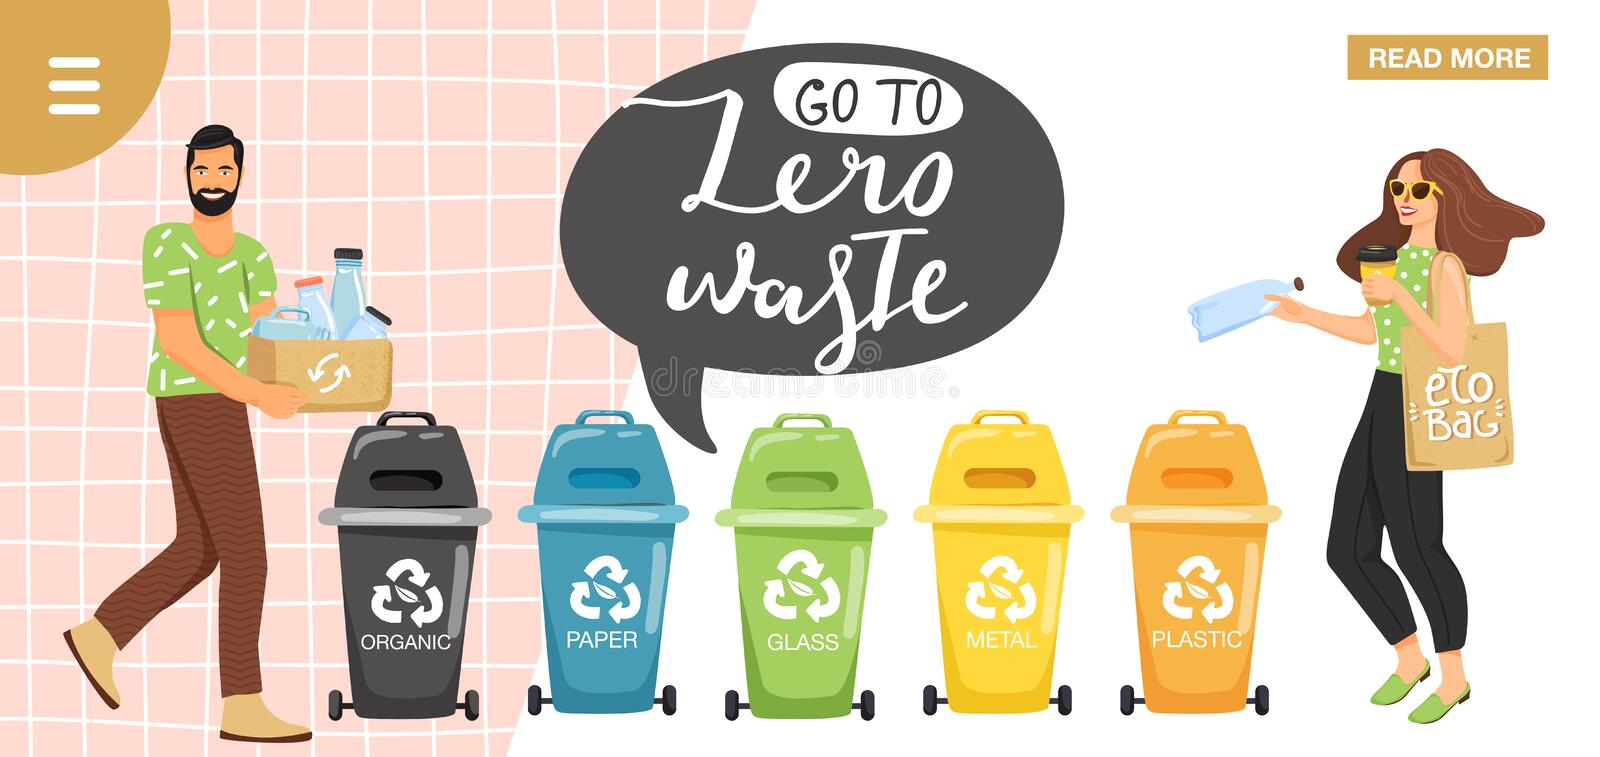 Recycling concept. People sorting garbage into containers for recycling. Website landing page design template. Stylish typography. Slogan design `go to zero vector illustration